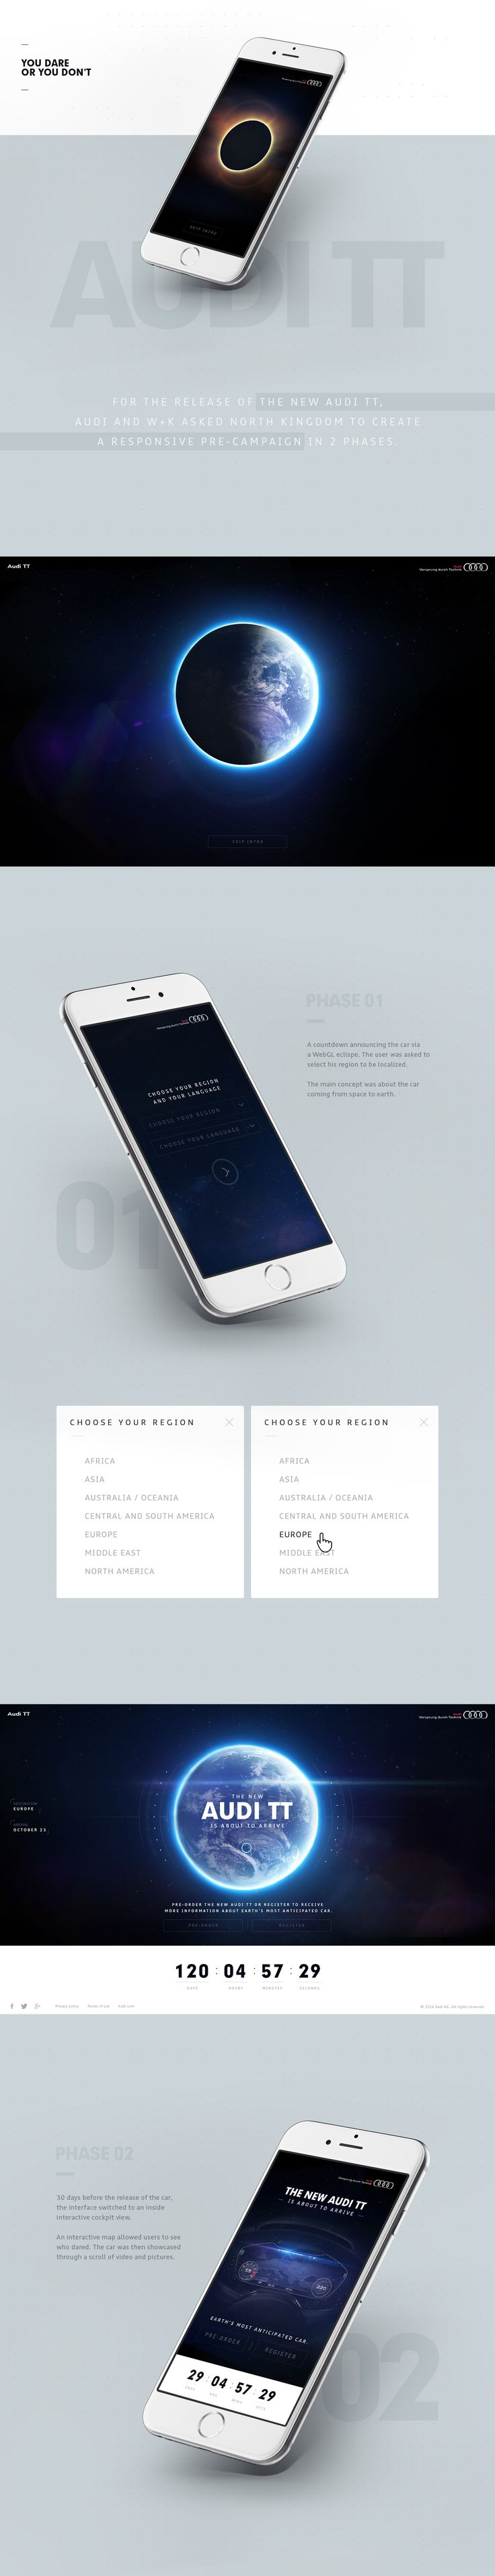 For the release of the new Audi TT, Audi and W+K asked North Kingdom to create a responsive pre-campaign in 2 phases.